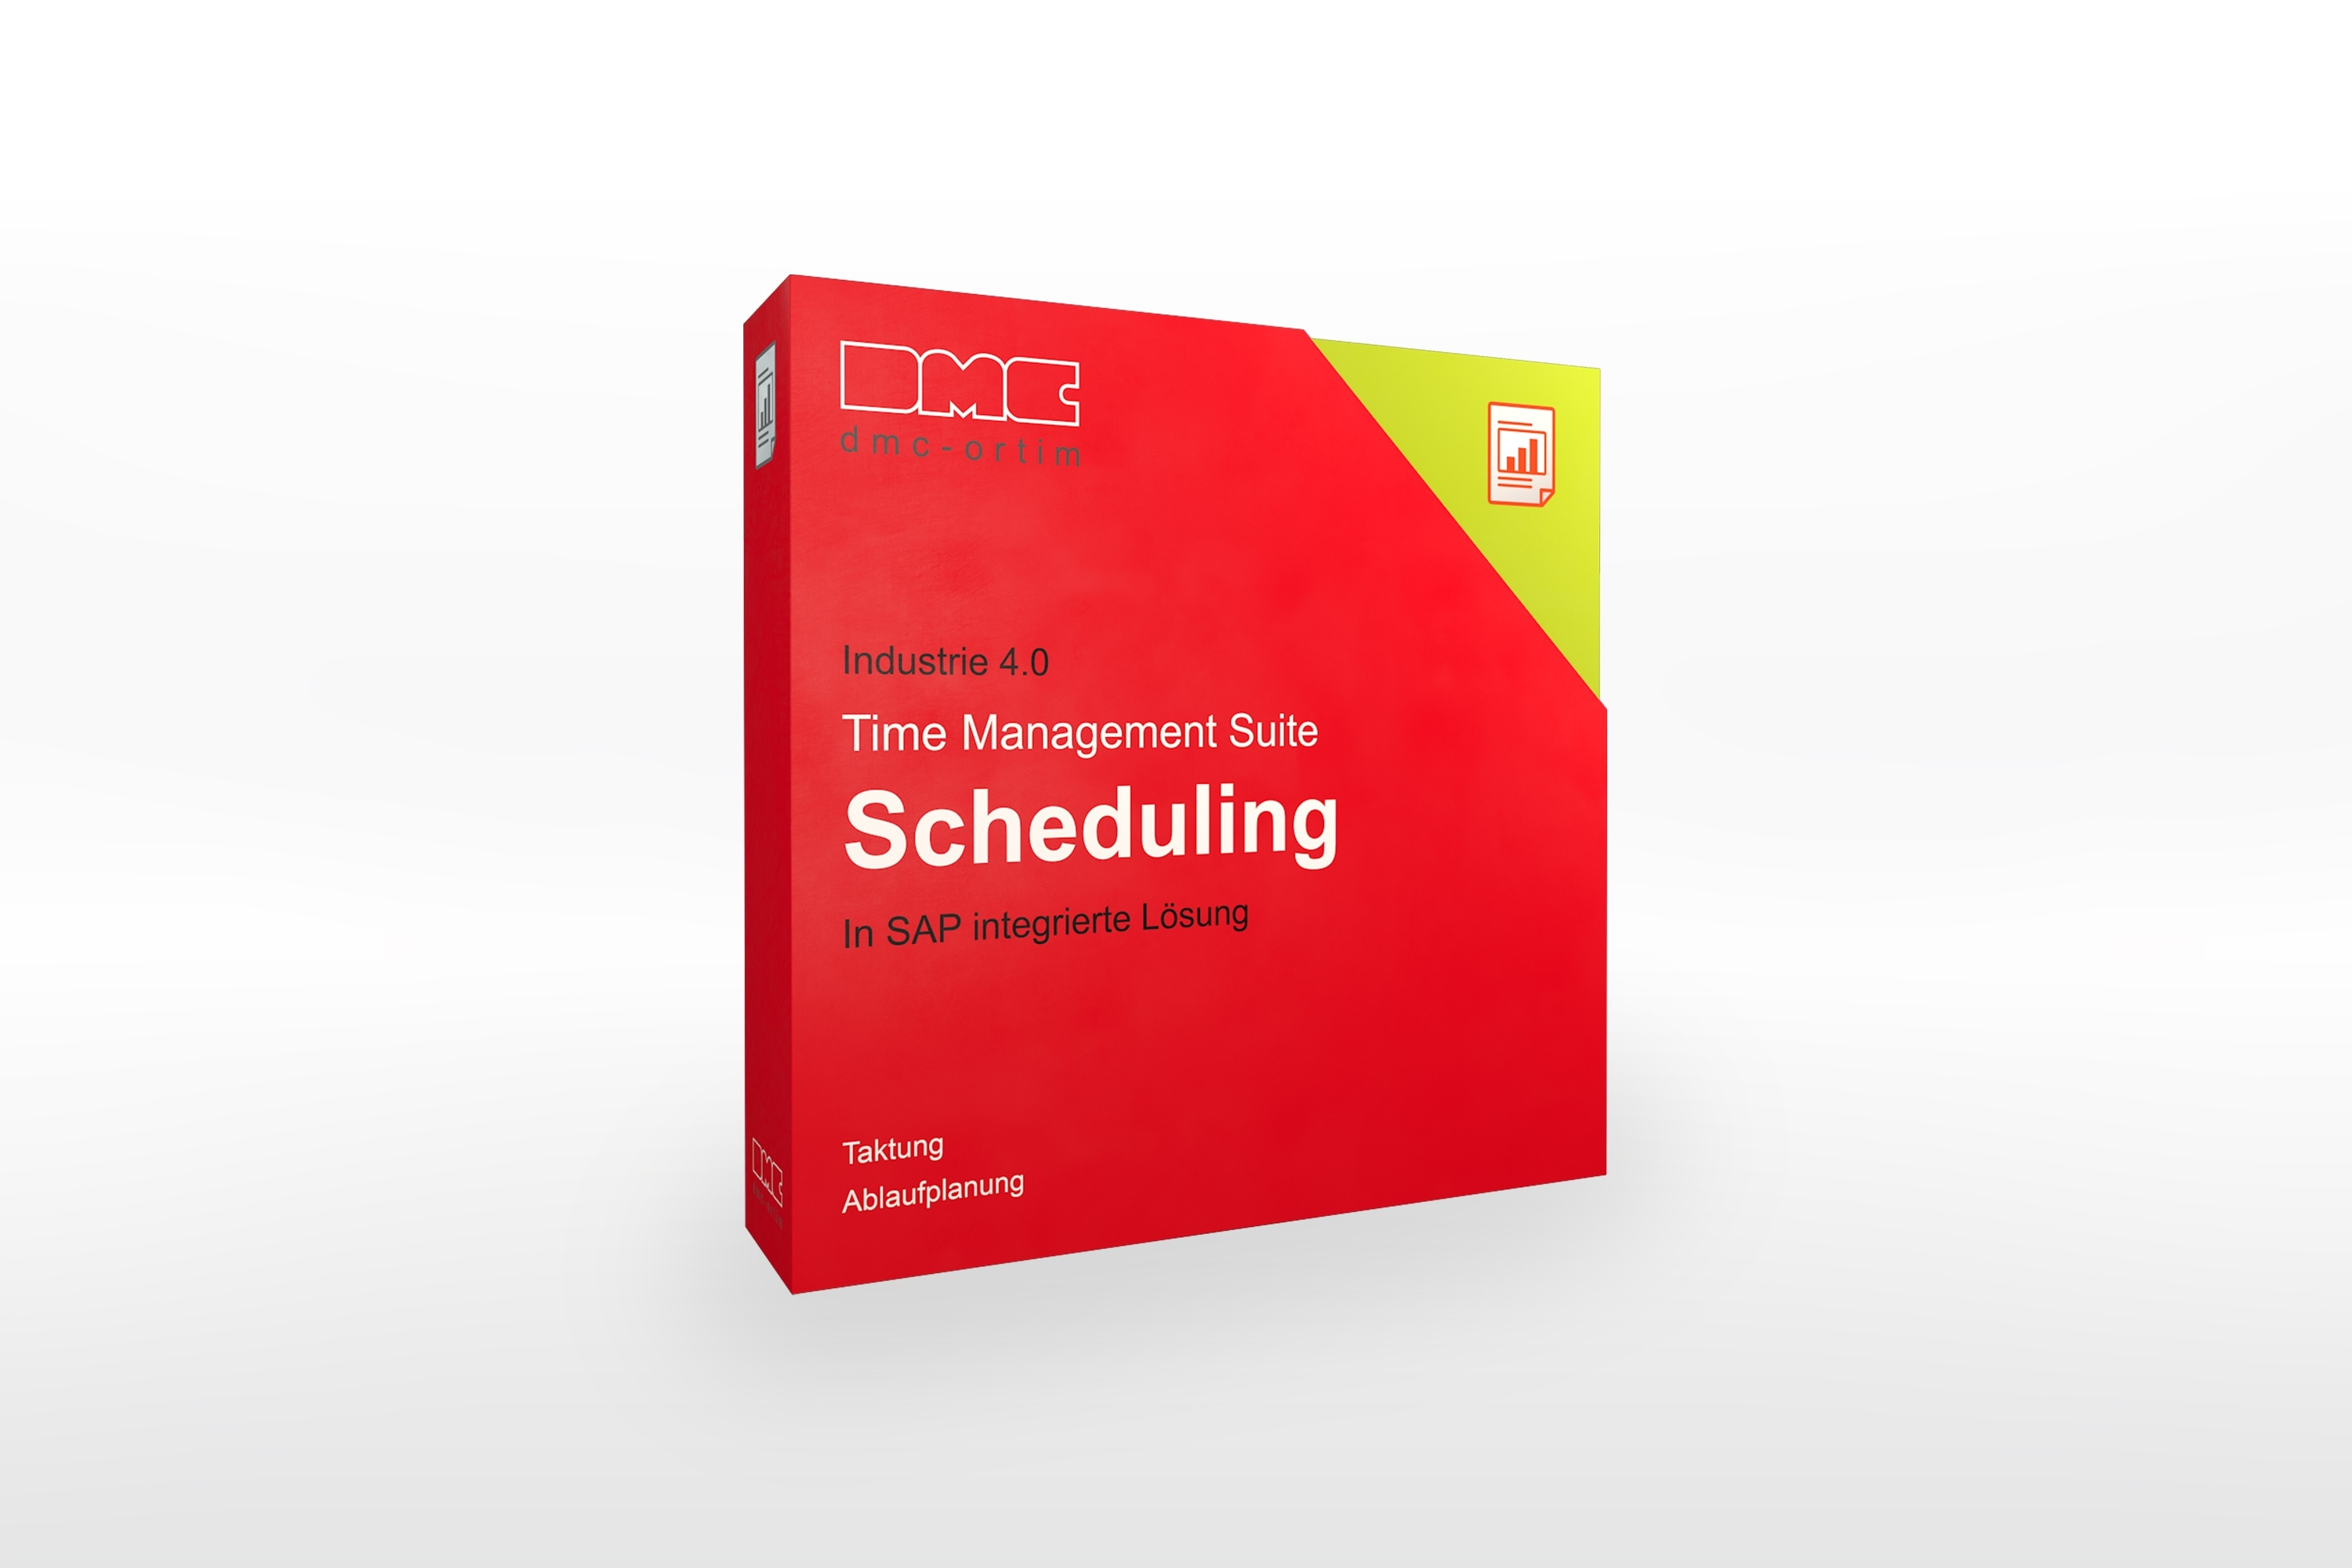 maxfath-dmc-group-muenchen-redesign-packaging-capp-knowledge-scheduling